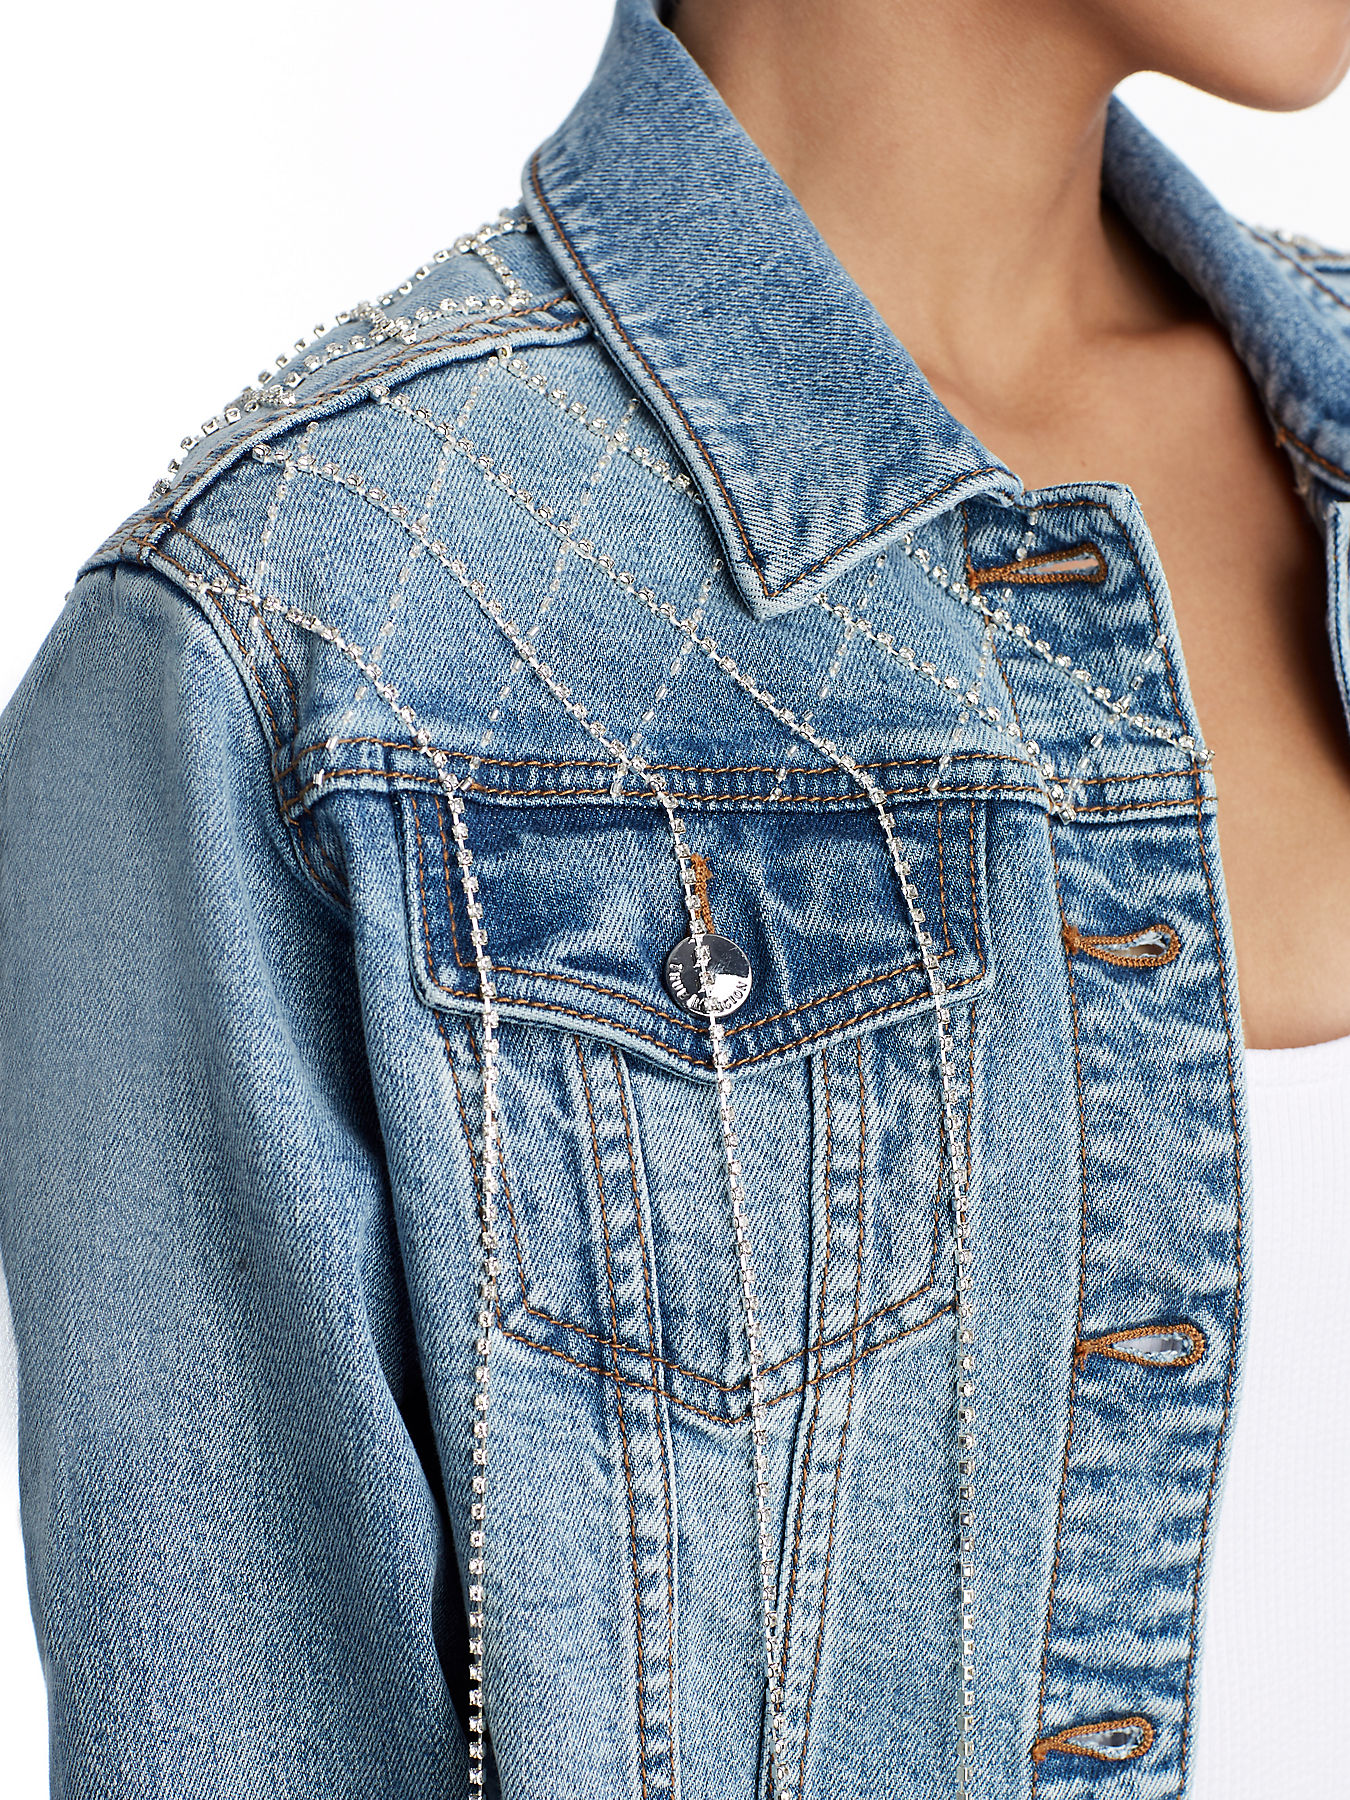 Trucker Denim Jacket Womens W Cropped Crystals SUzqMpVG